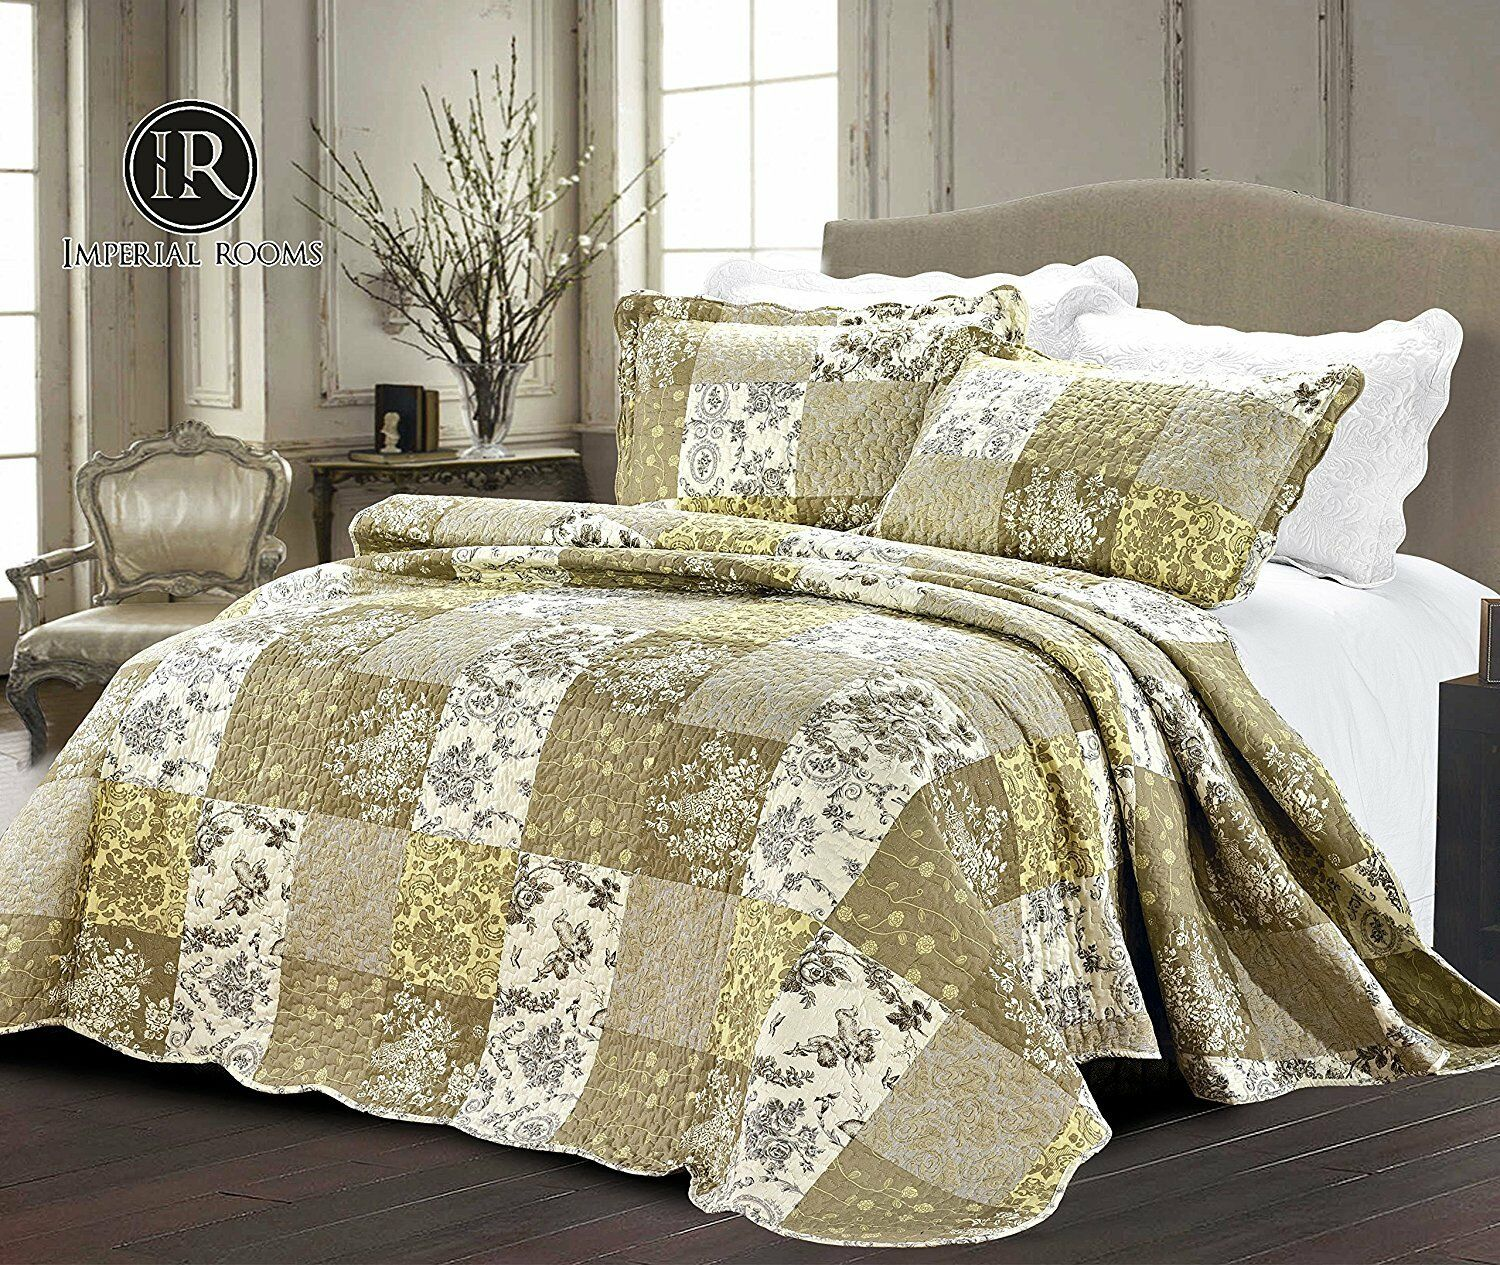 Embroidered Patchwork Quilted Bedspread Comforter With Pillow Shams King Size